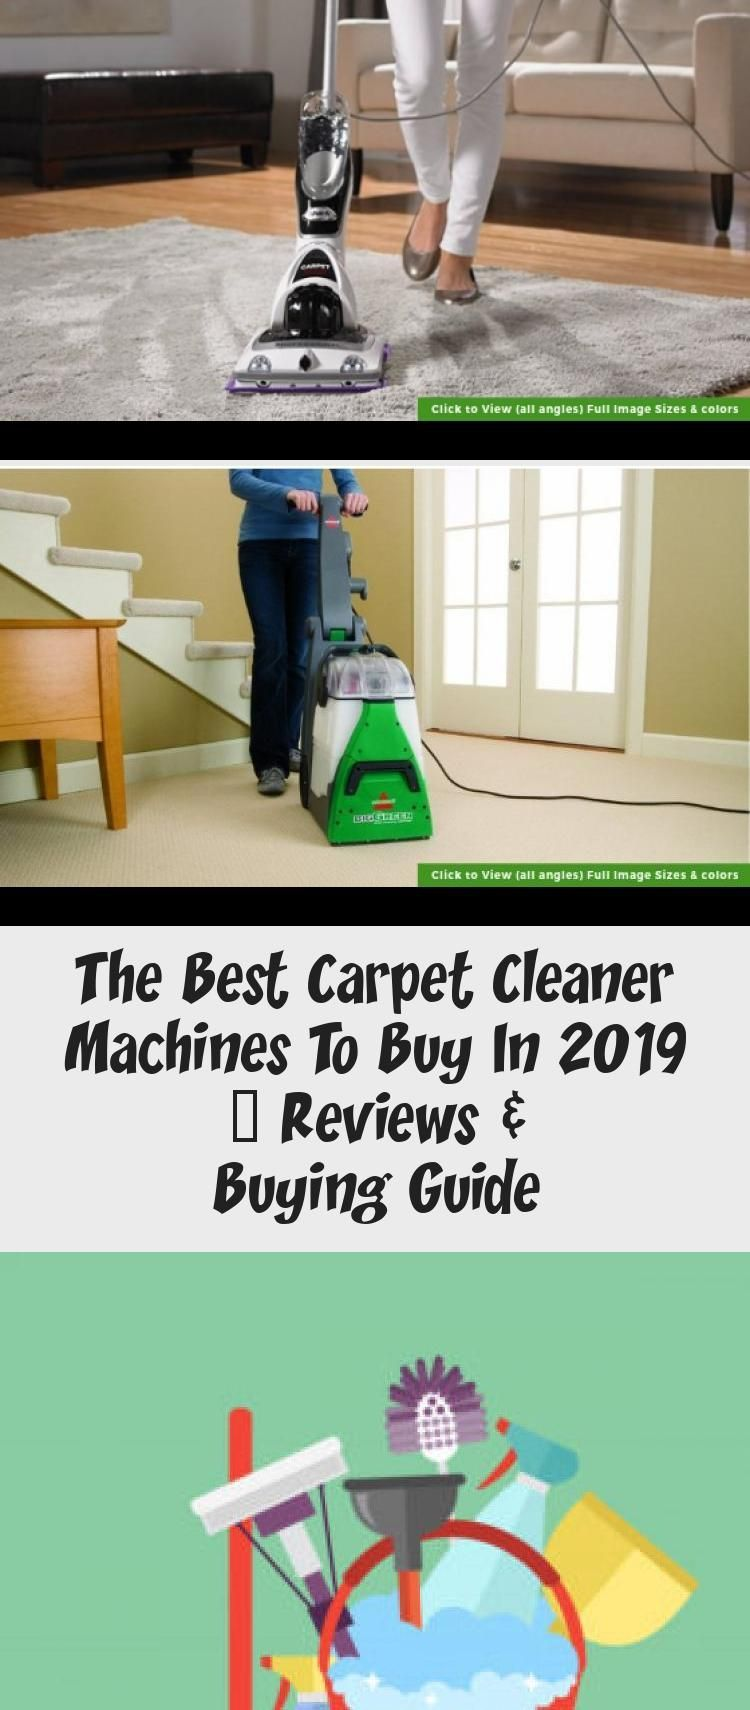 Top Rated Carpet Cleaners To Buy Bissellcarpetcleaner Carpetcleanerfordogurine Bissellcarpetcleaner Buy Carpet Carpetcleaner In 2020 Top Rated Carpet Cleaners